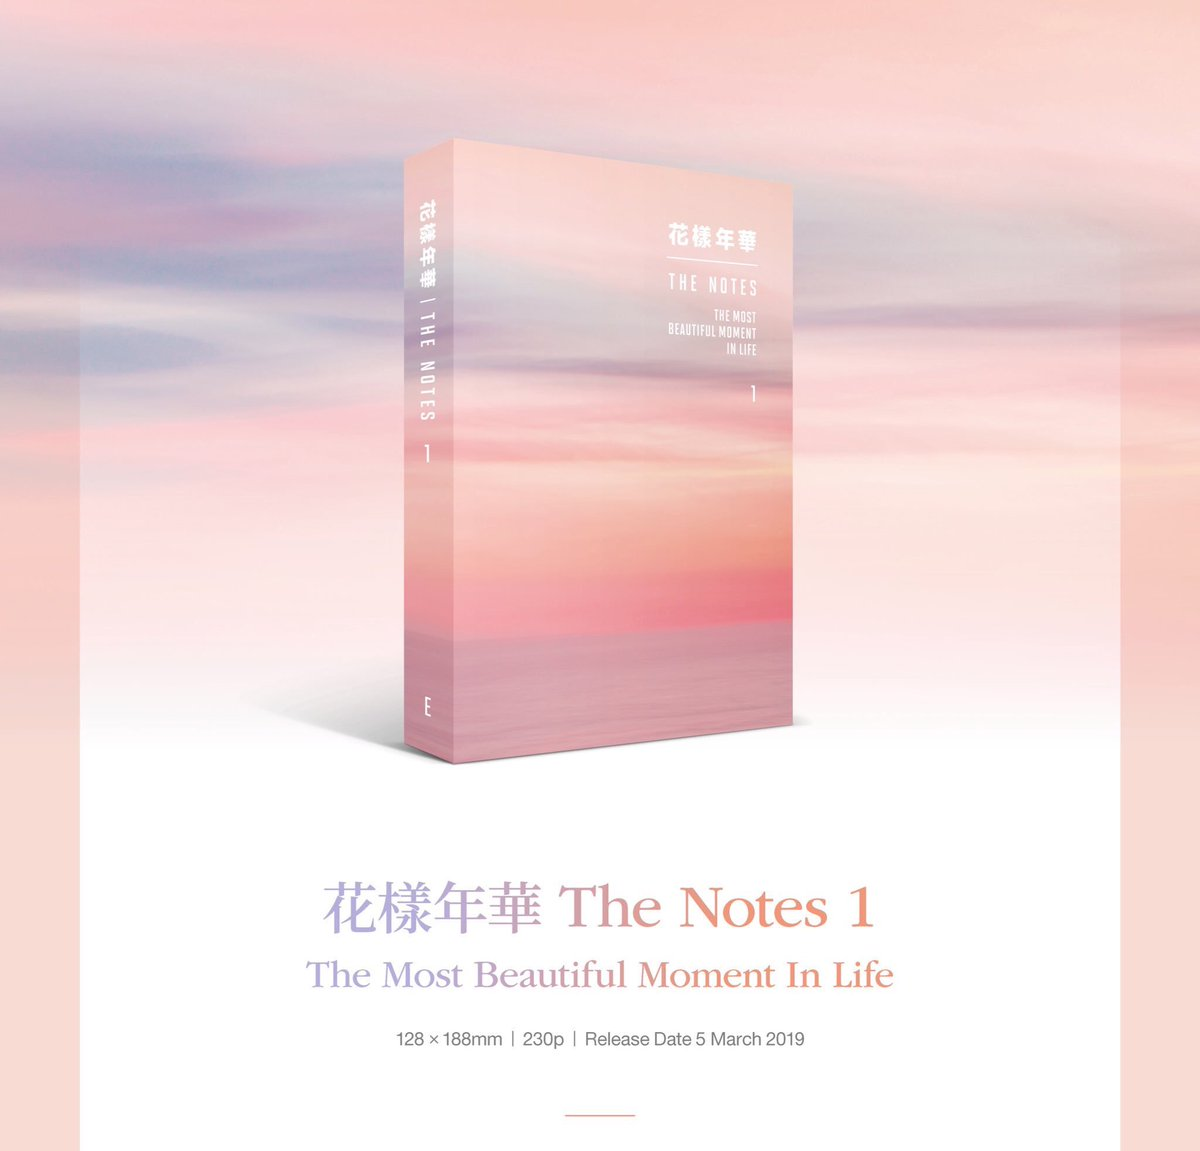 OMG SOMEONE LEAKED THE FIRST 150 PAGES OF #TheNotes1   PDF available here:   https:// bit.ly/2xKiy0D  &nbsp;  <br>http://pic.twitter.com/a4e65CLcvj